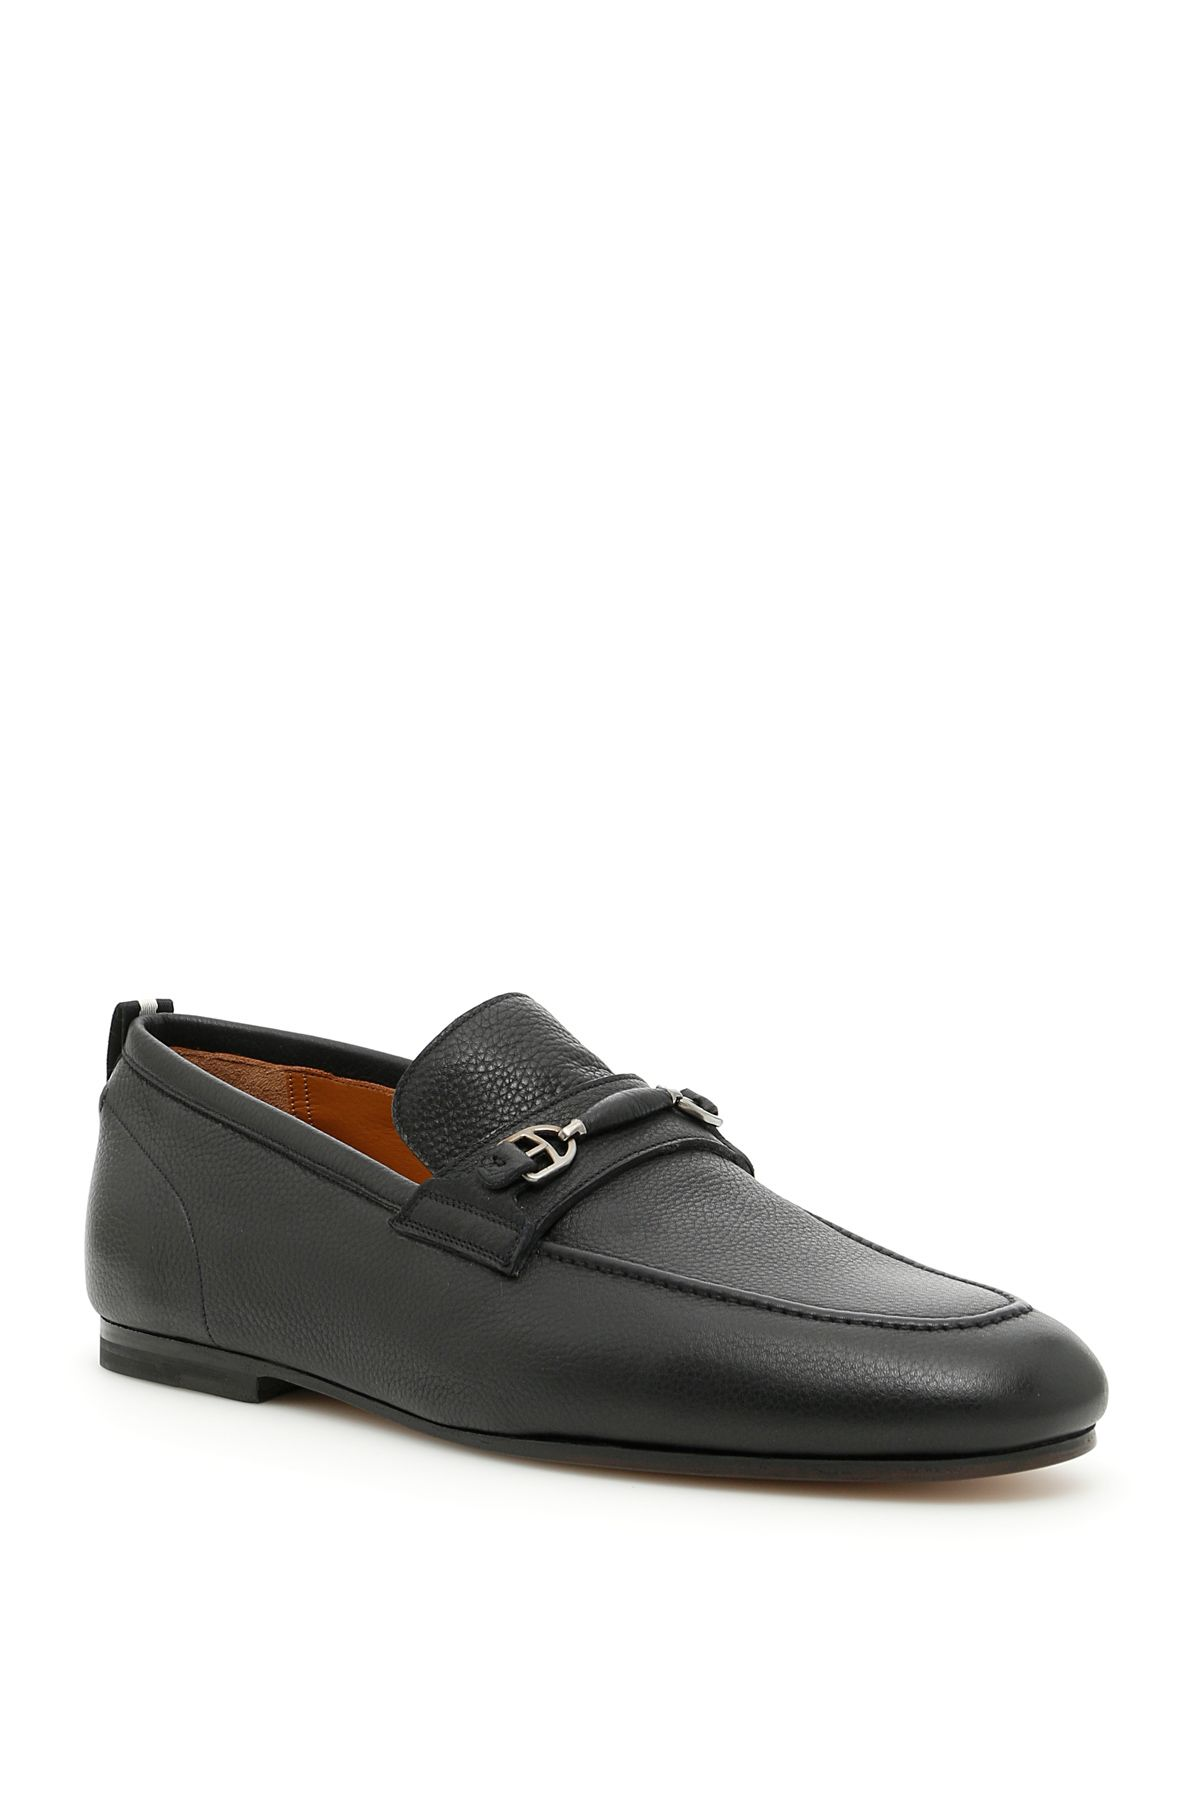 Men's Bally Plintor Loafers